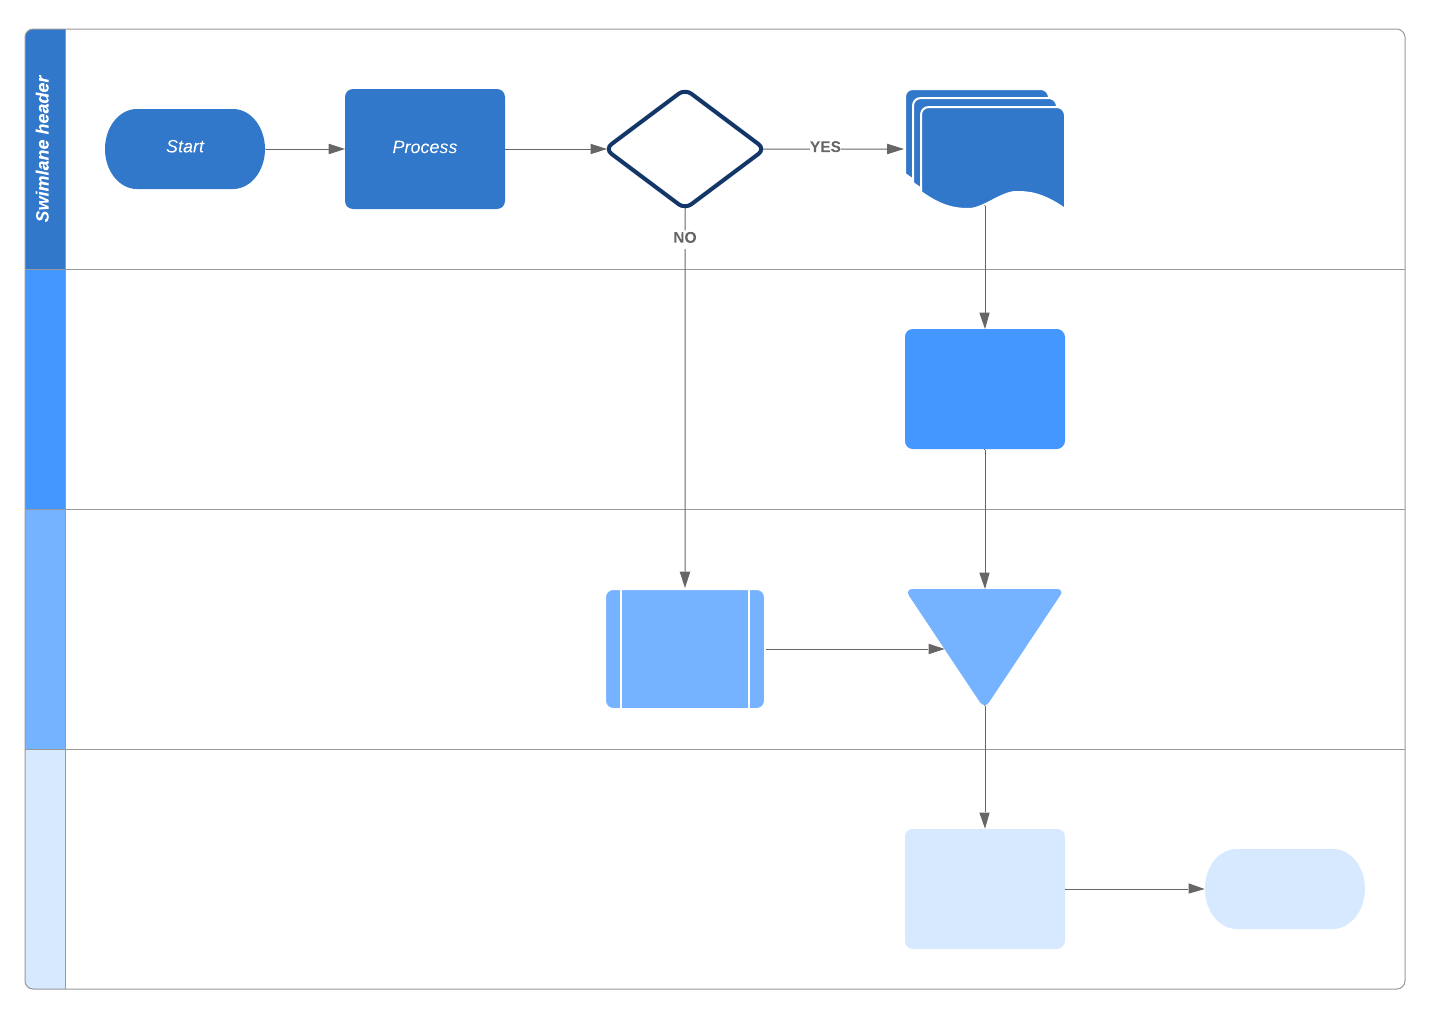 flowchart with swimlanes for project management